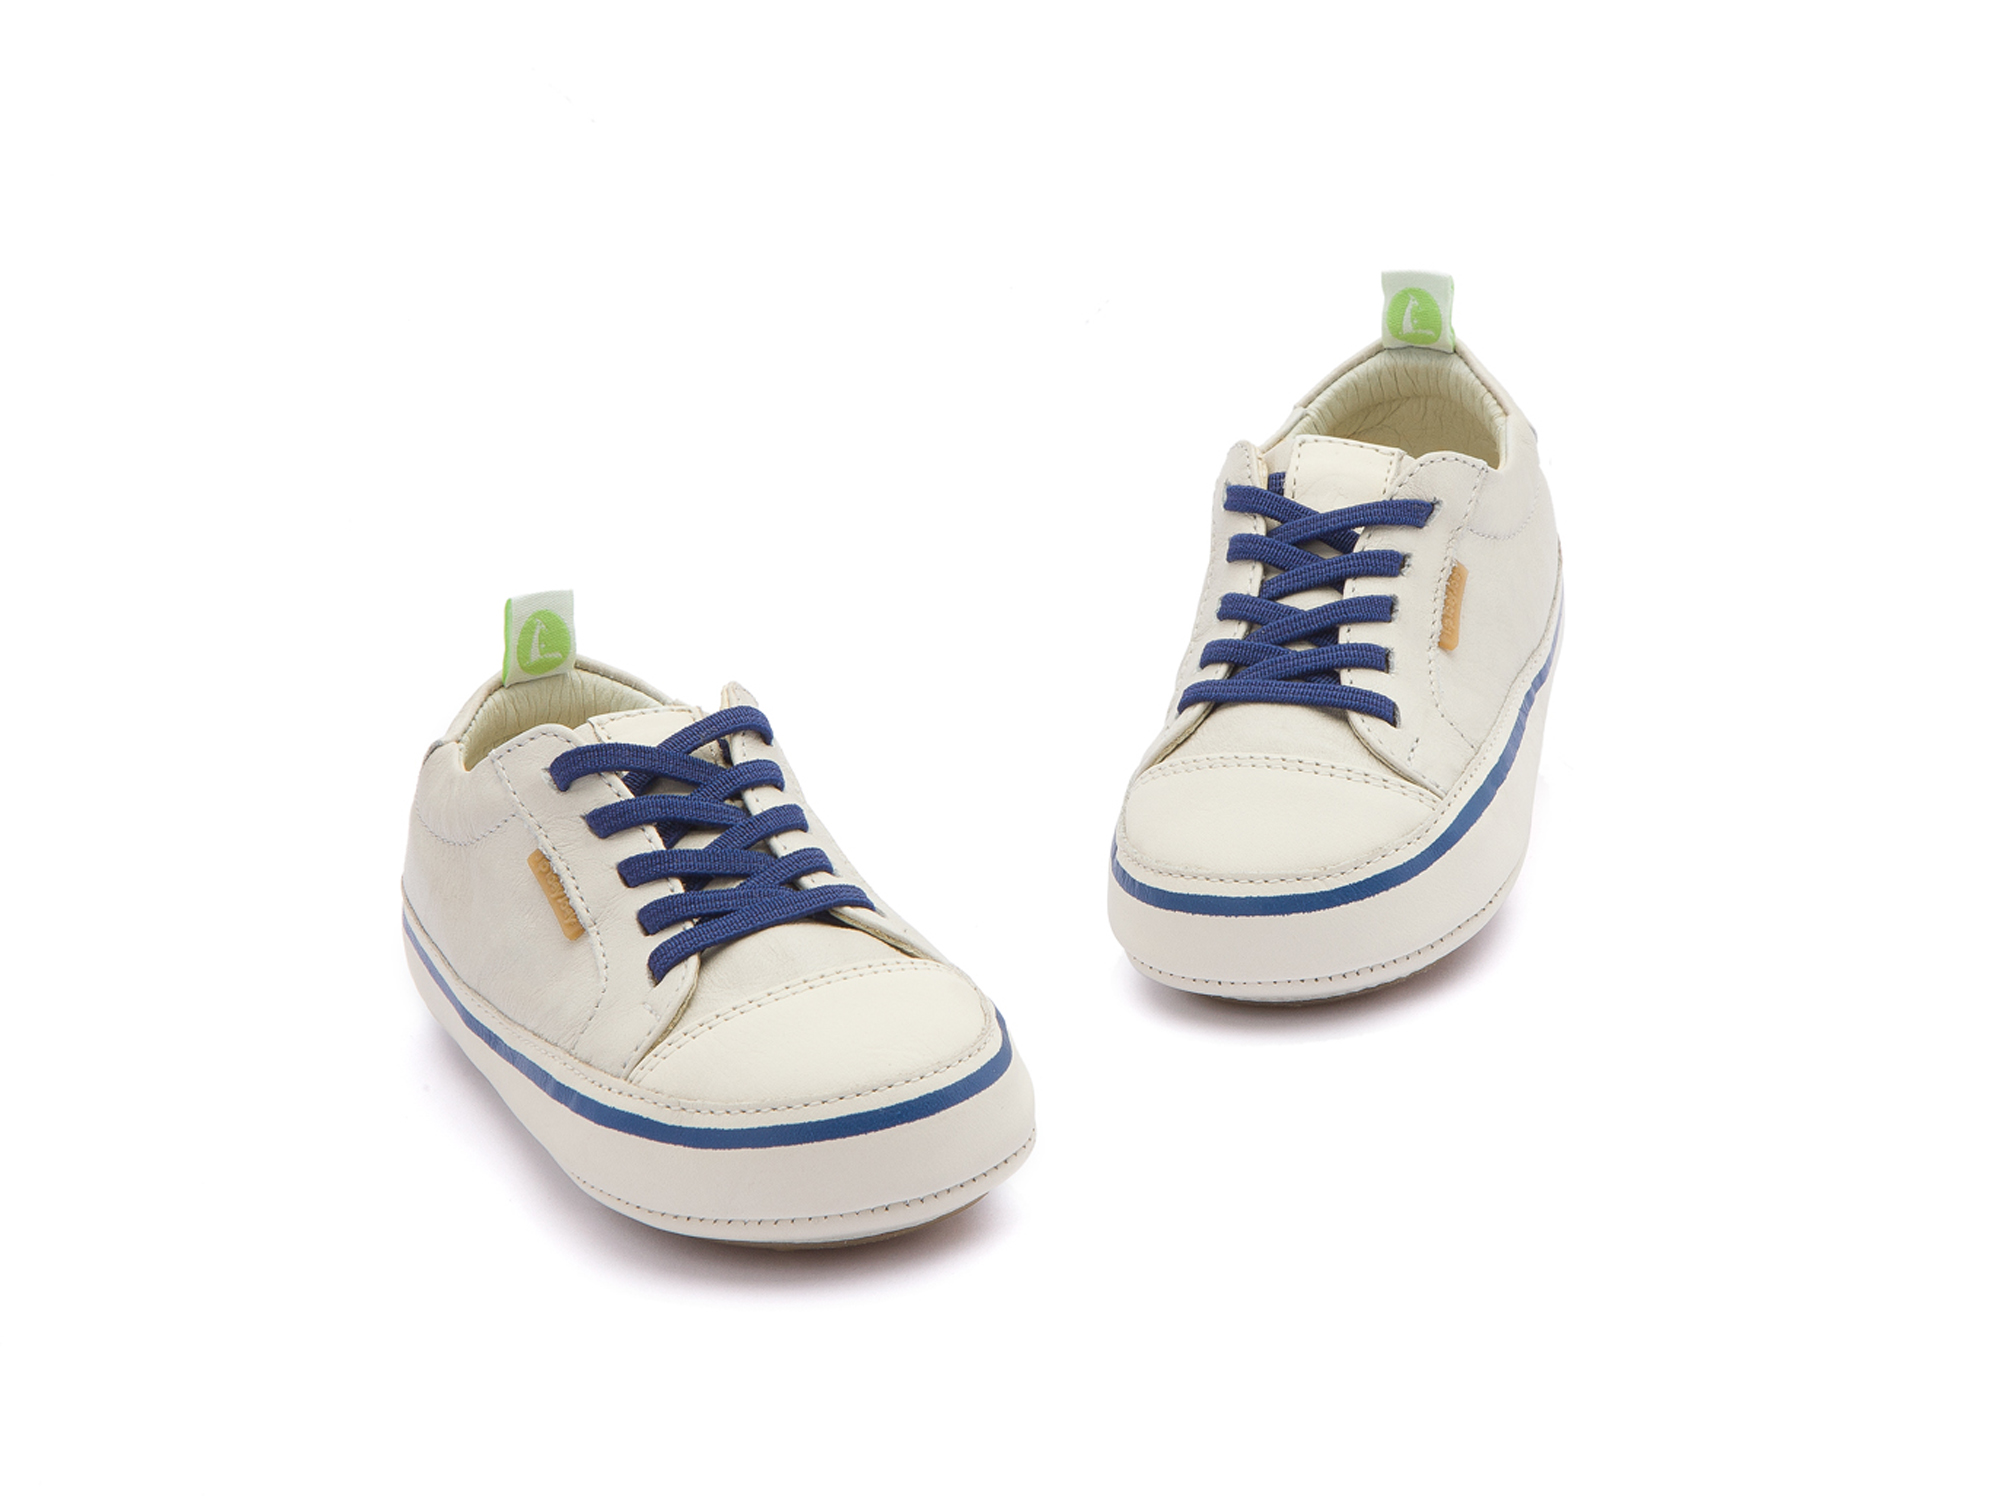 4fd4aceae Tênis Funky Cement Crush/ Tapioca/ Tapioca Baby for ages 0 to 2 years -